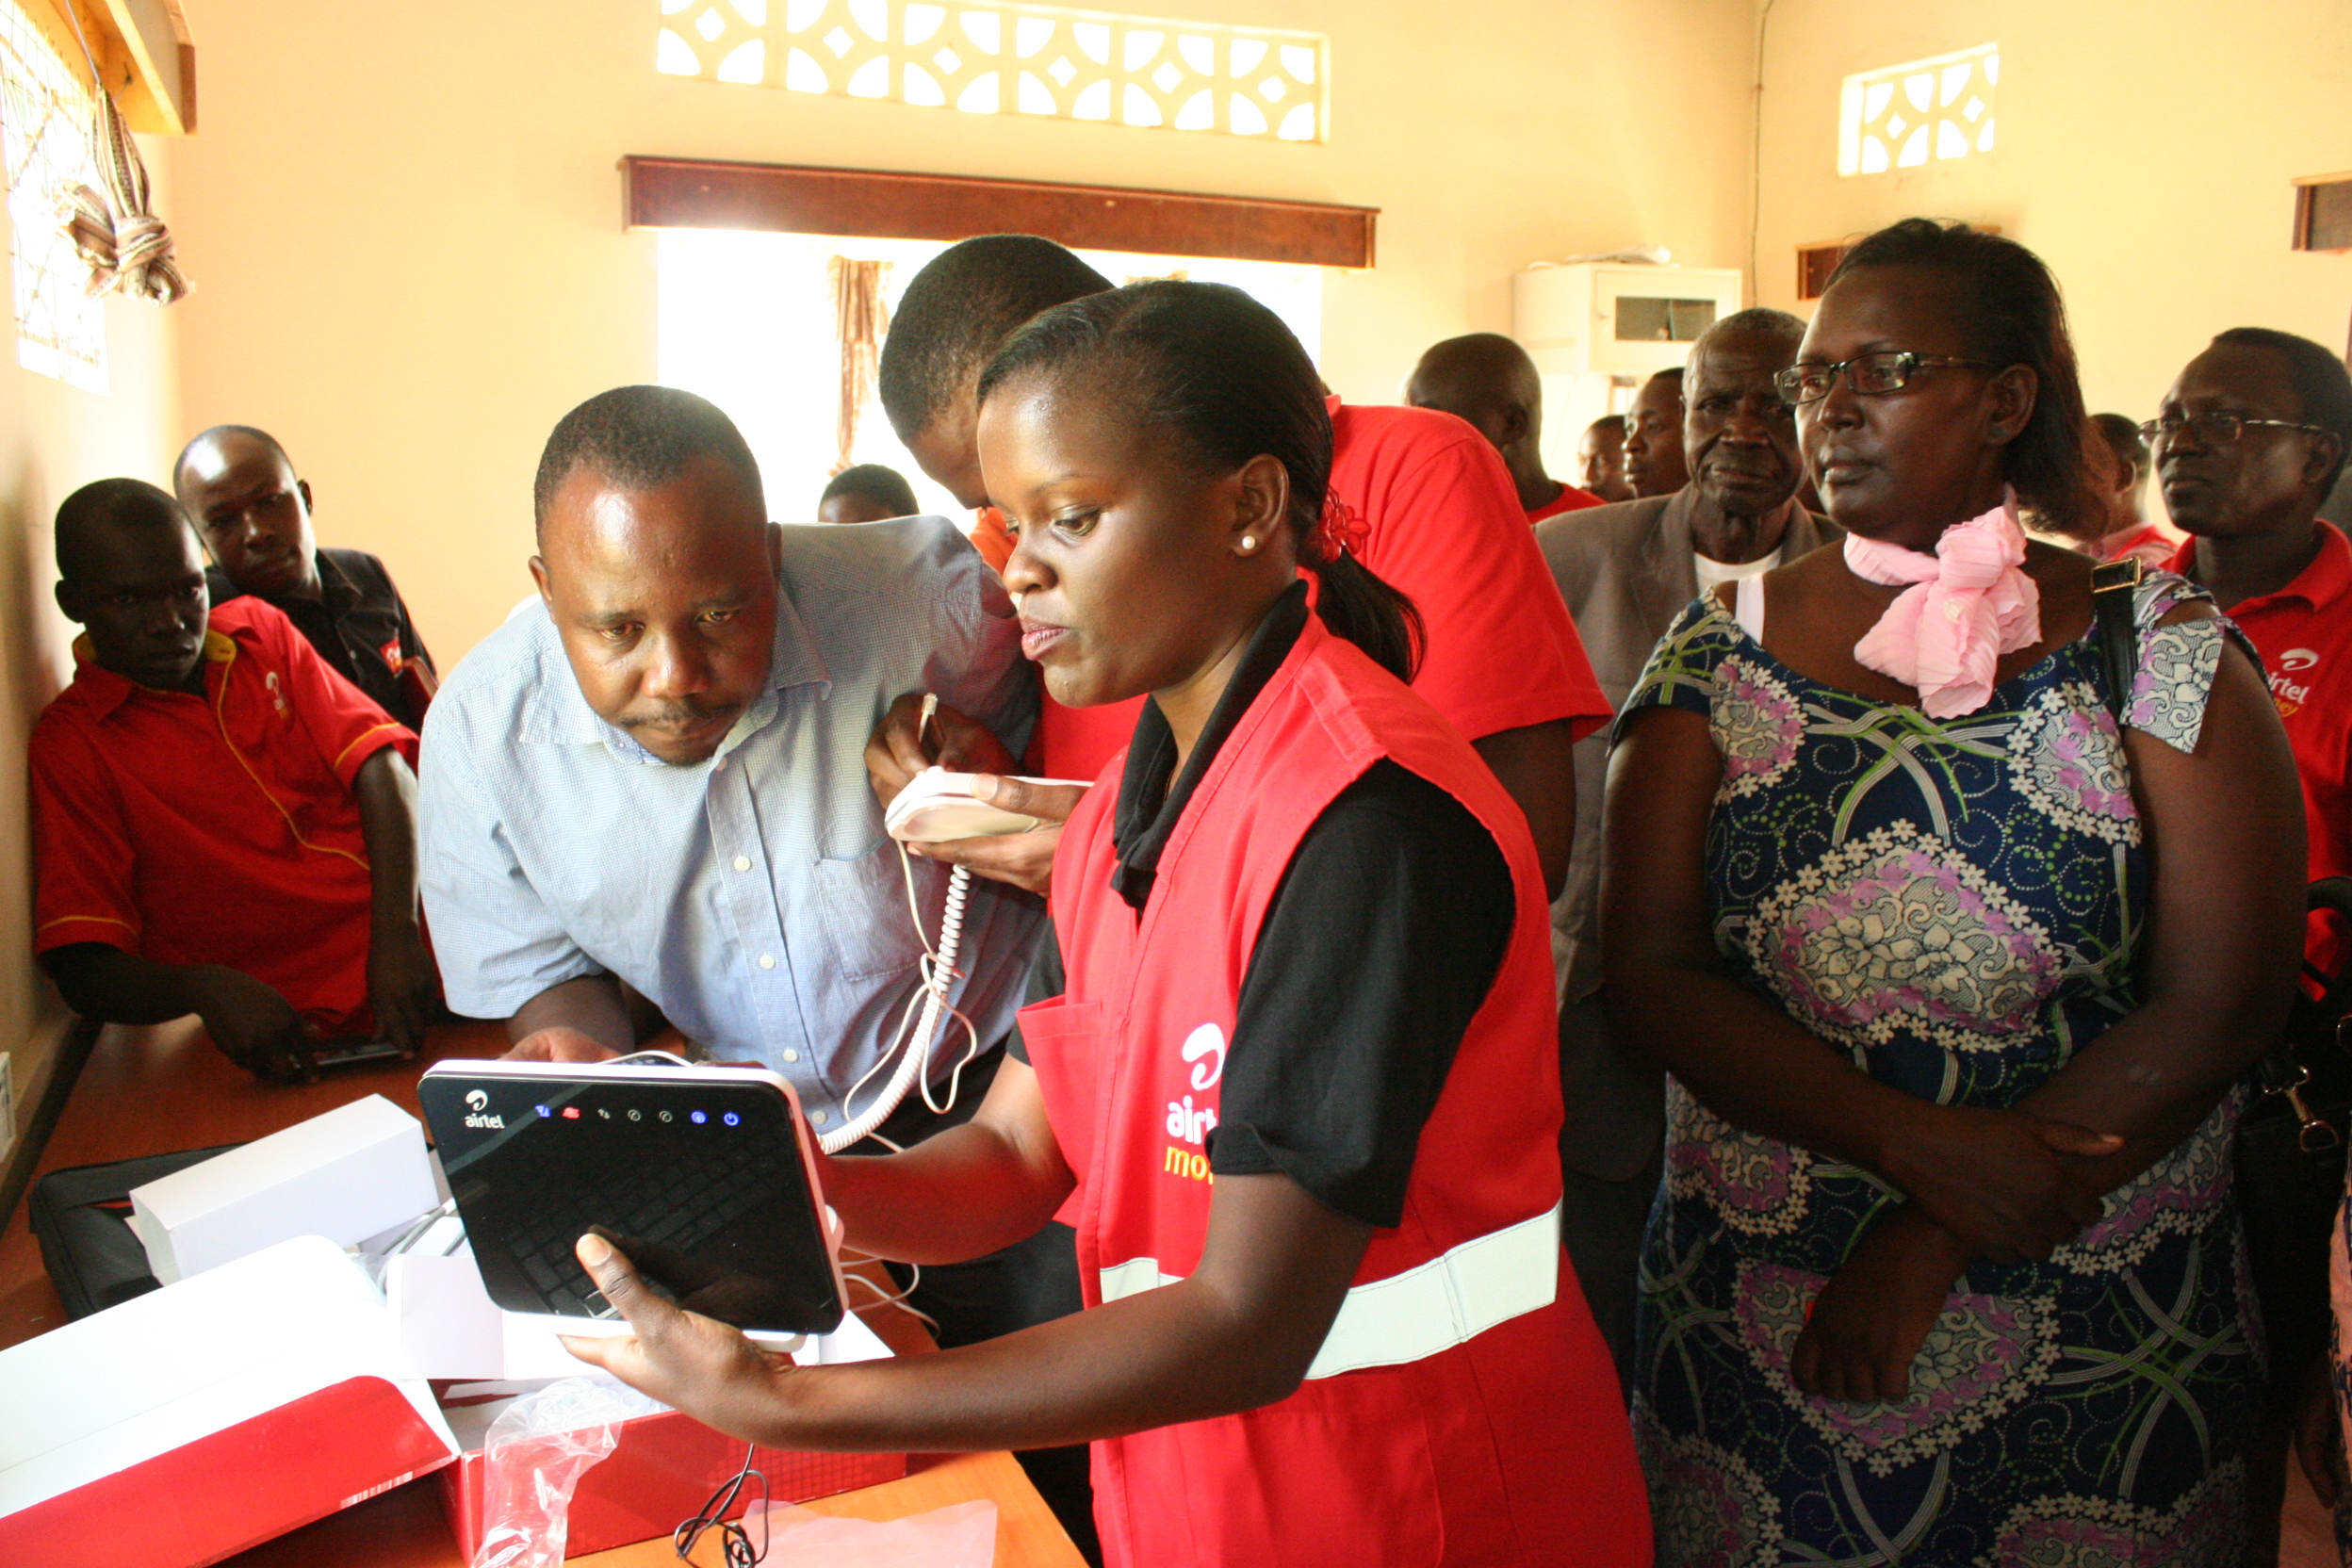 Airtel Kenya CSR manager Aigelgel Murbe installs the data device at Sigweng Karuoth